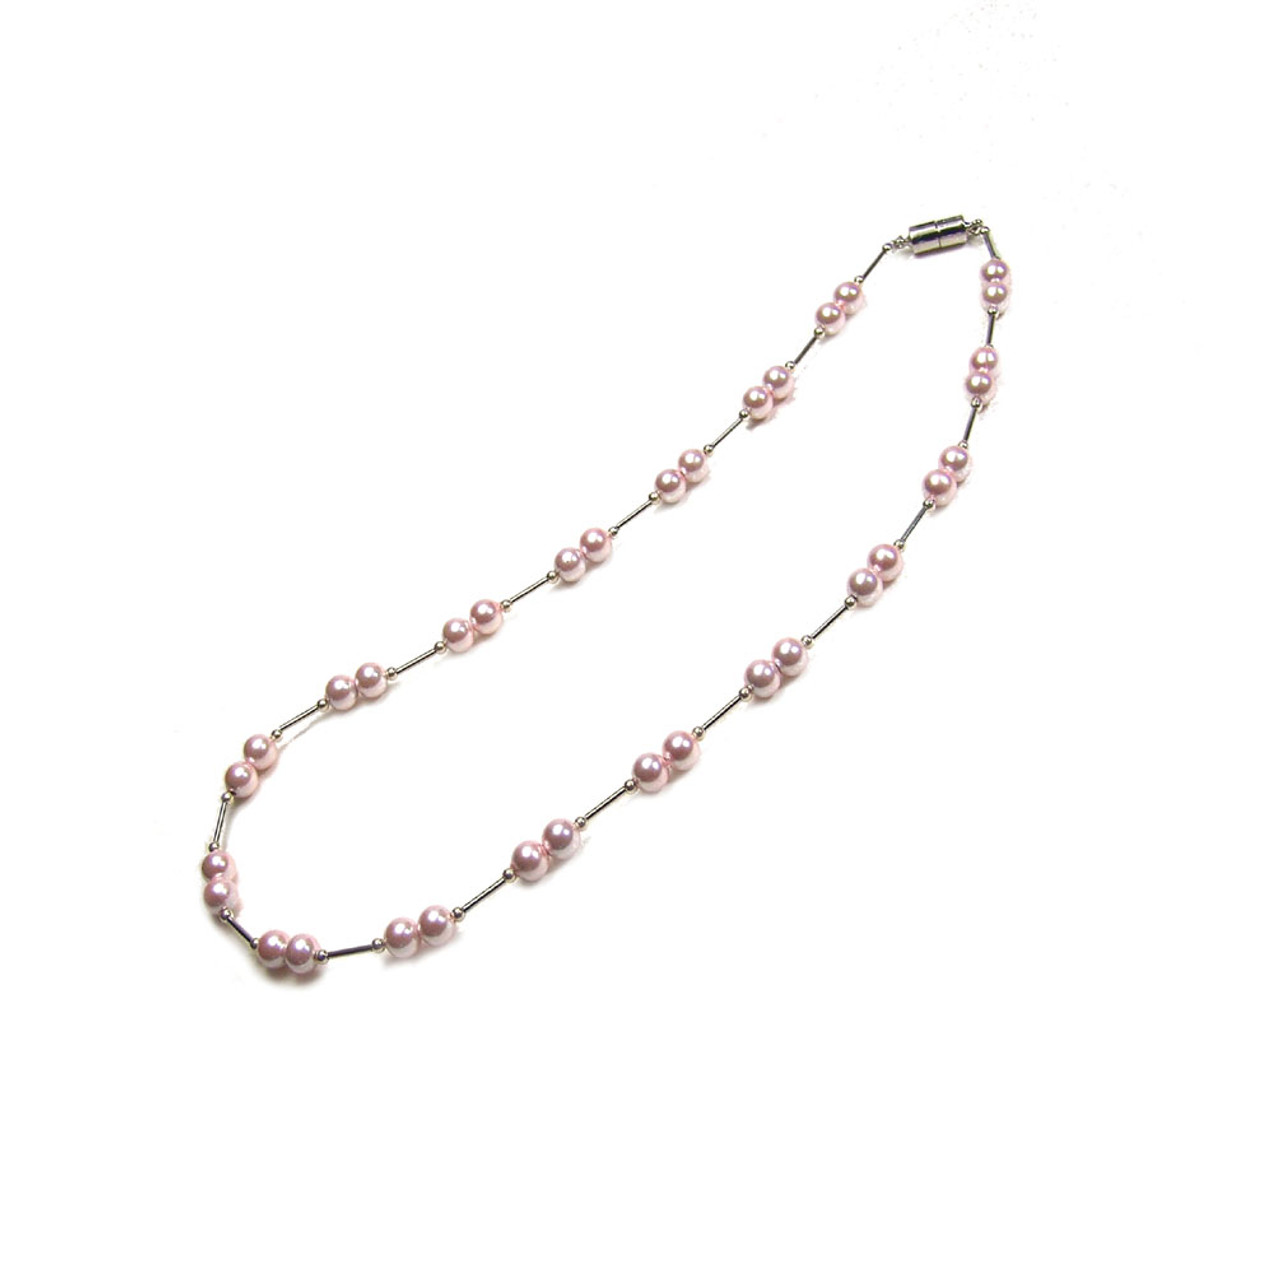 Accents Kingdom Womens Magnetic Hematite Necklace W Twist Beads A